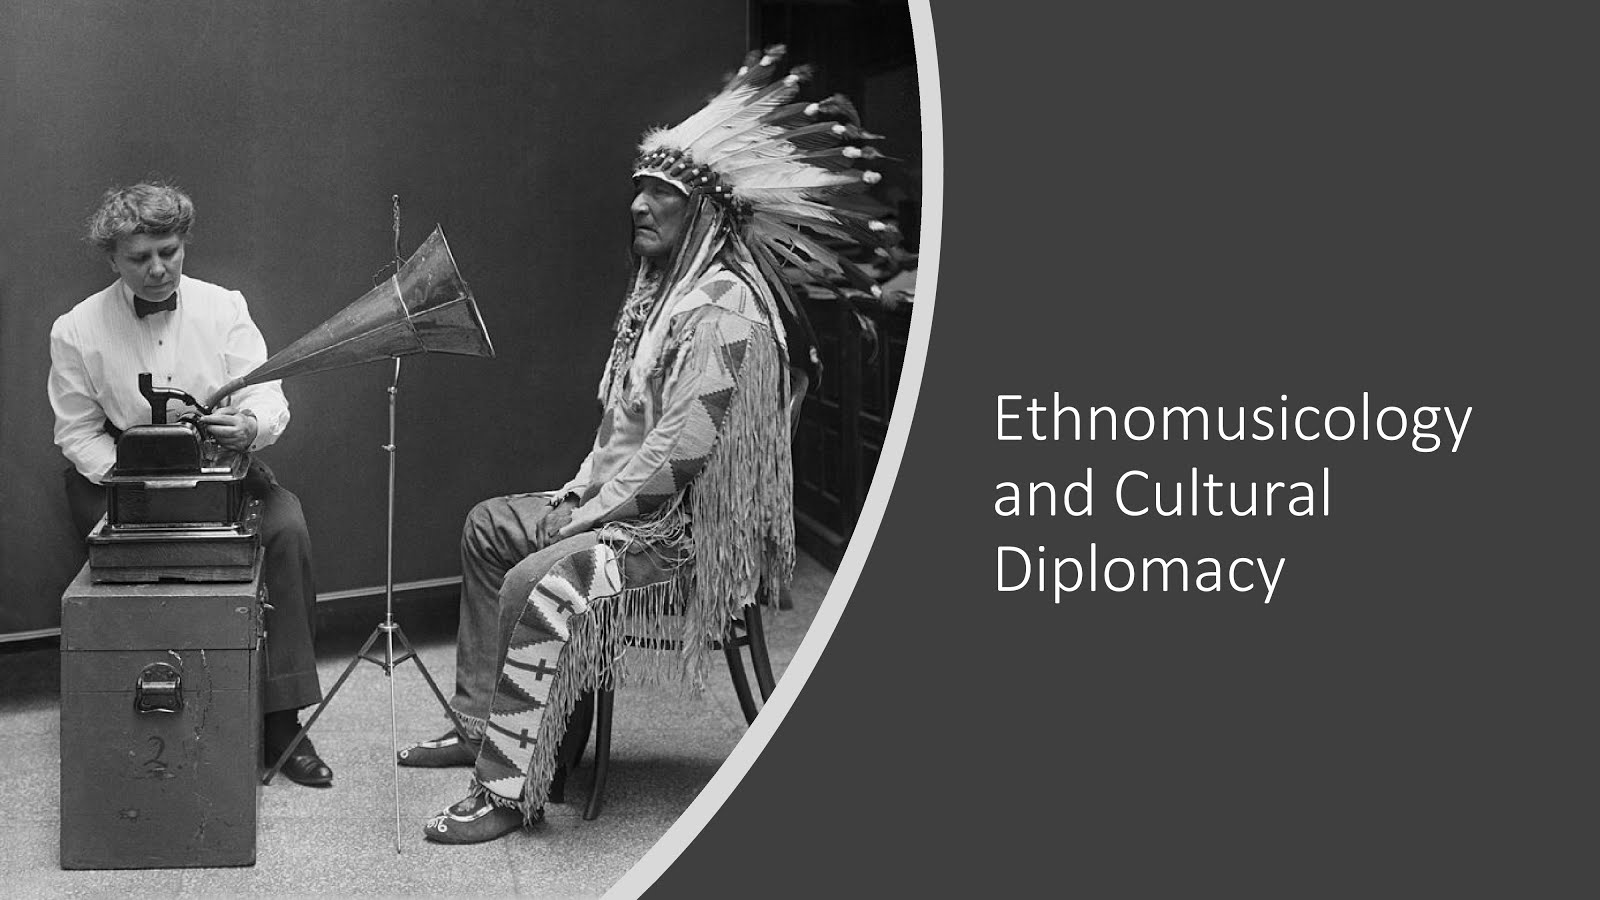 Ethnomusicology and Cultural Diplomacy